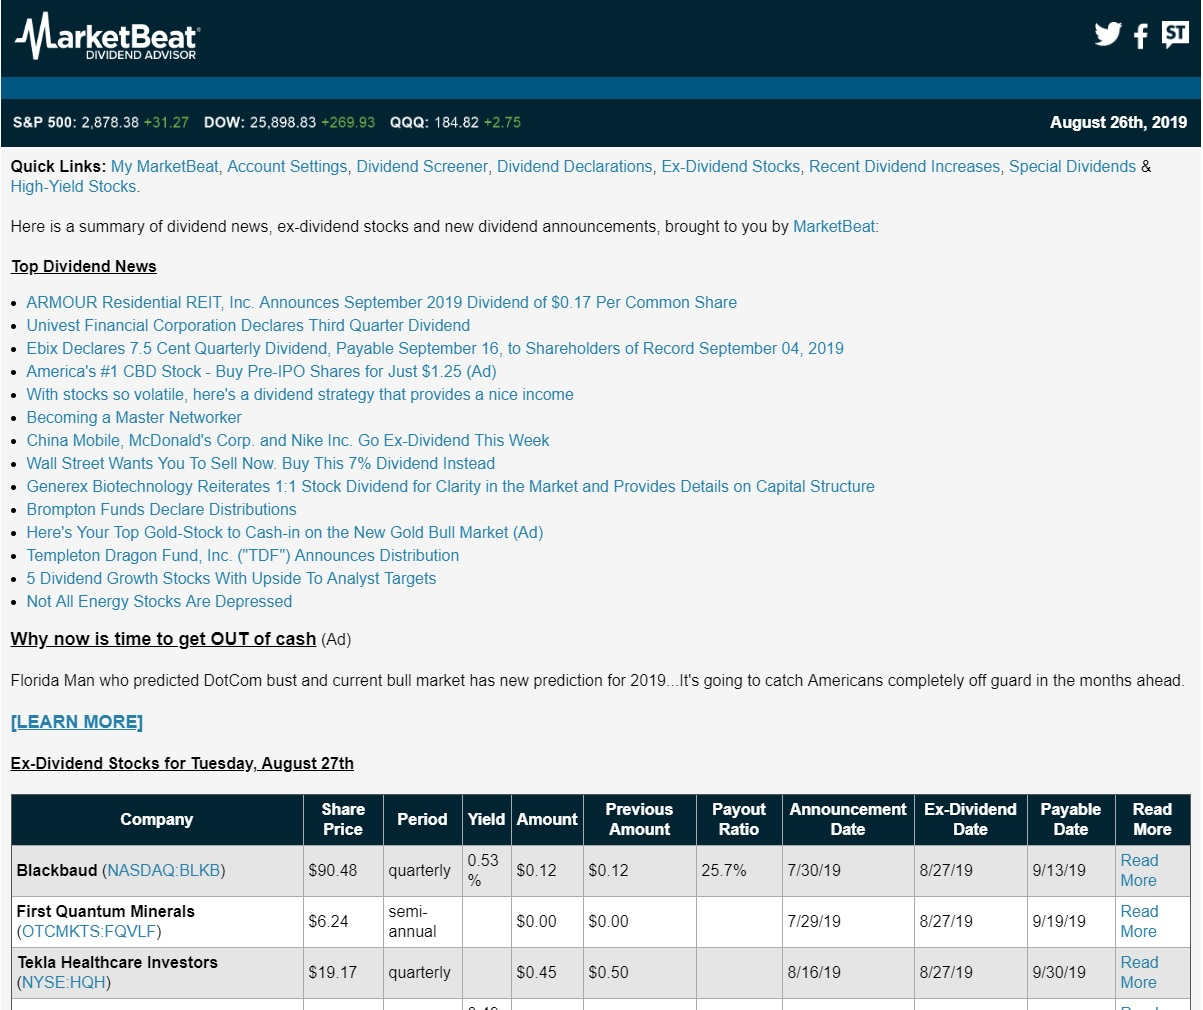 MarketBeat Dividend Advisor